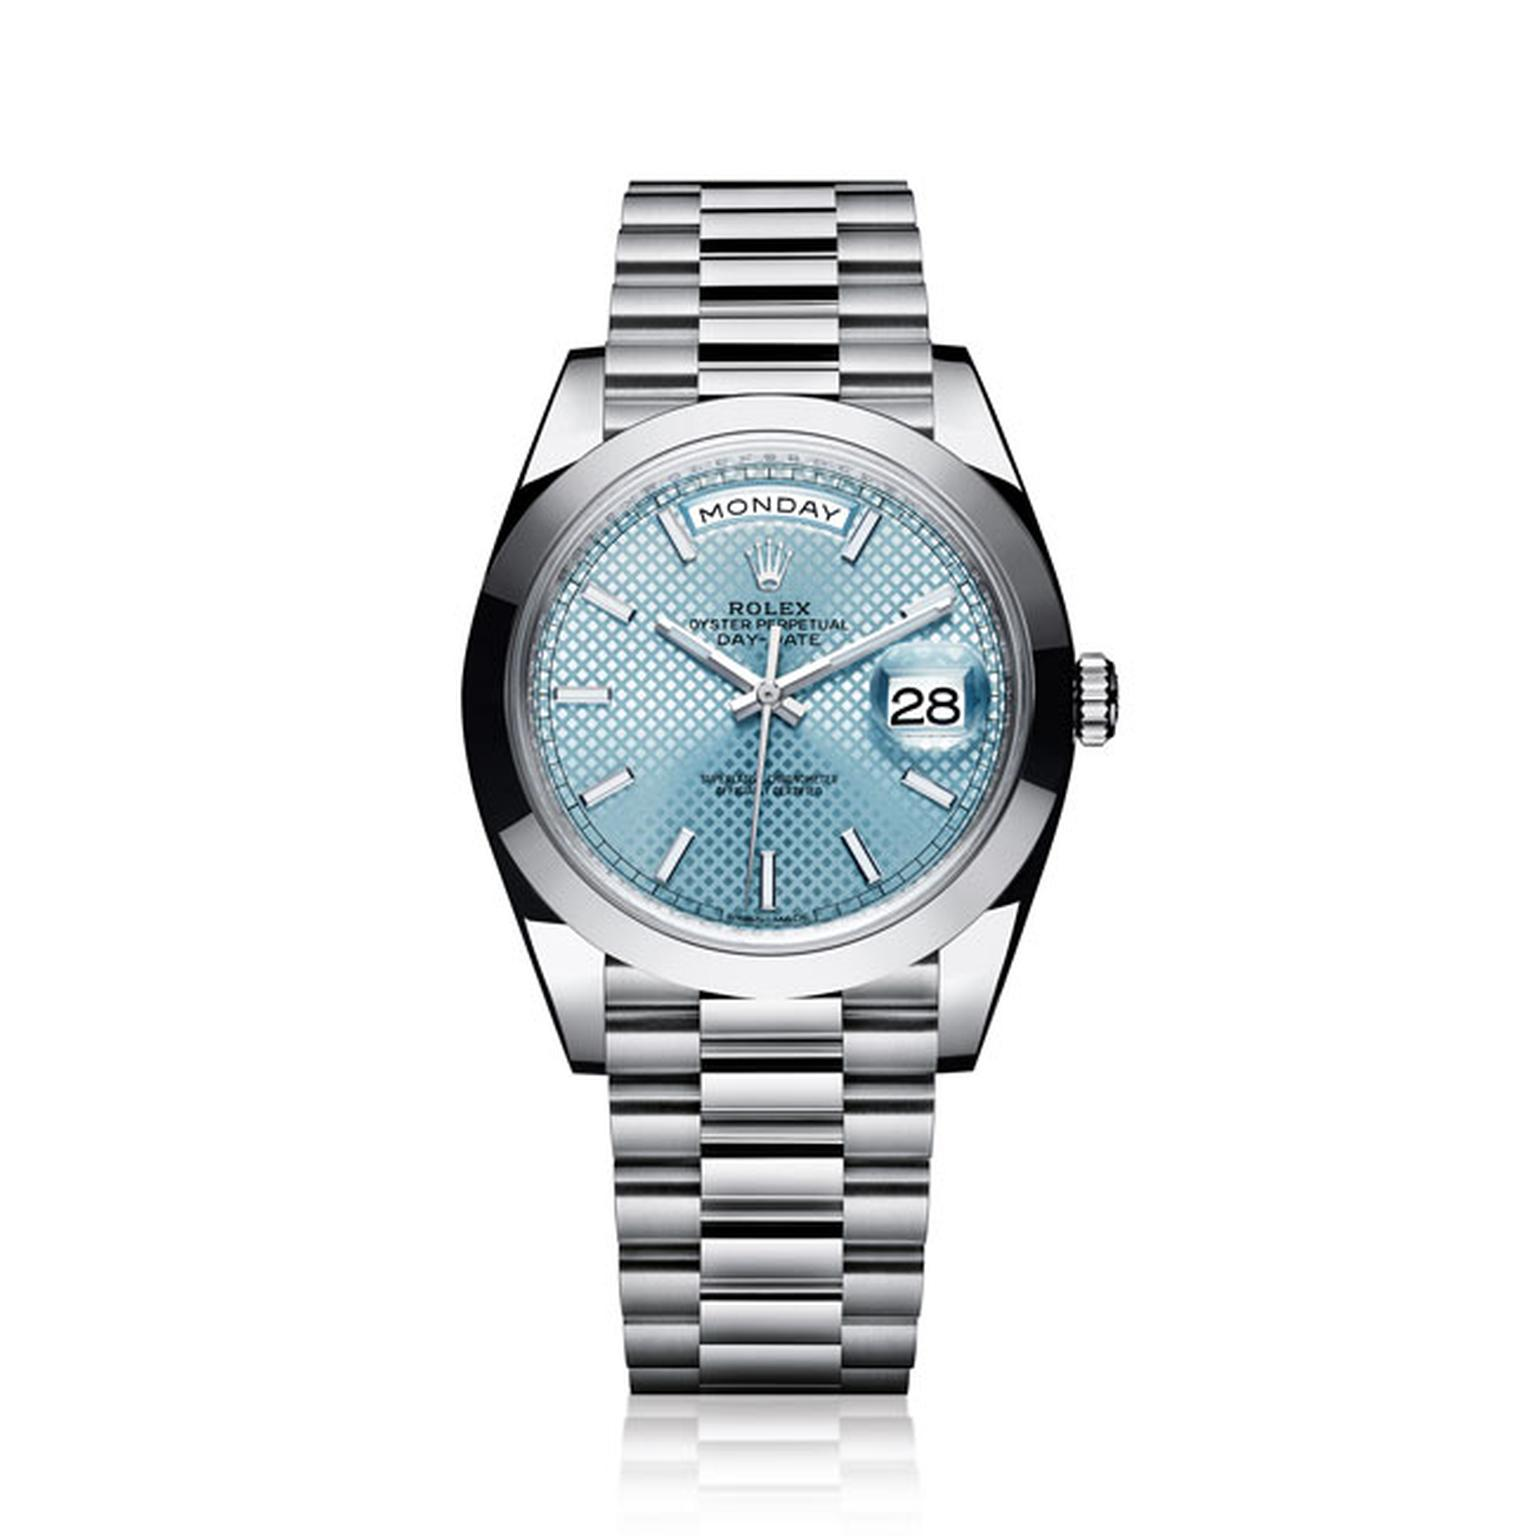 Rolex Day Date Platinum Men's Watch_main